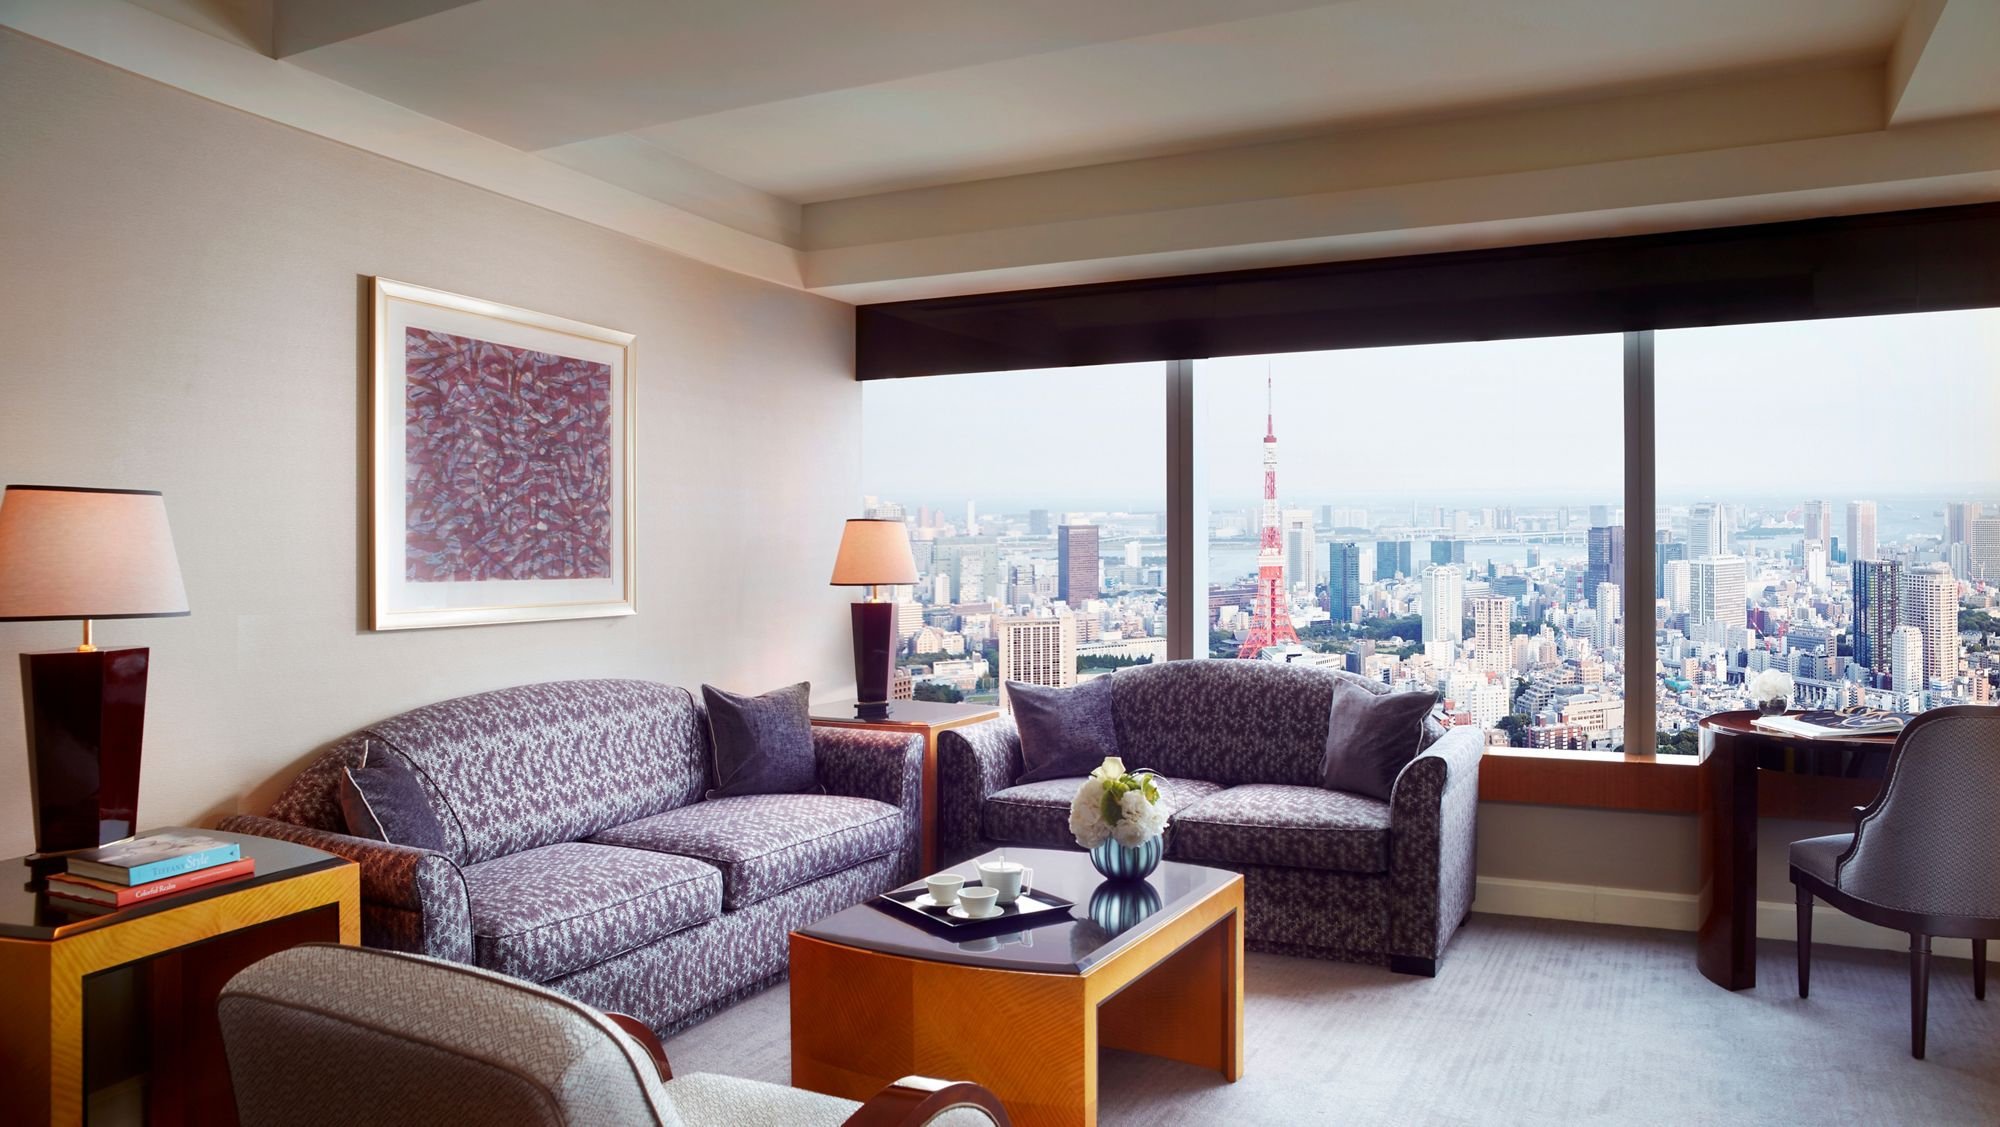 Suite living room with plush sofas, a wall of windows overlooking the city and a palette of grey, amethyst and white